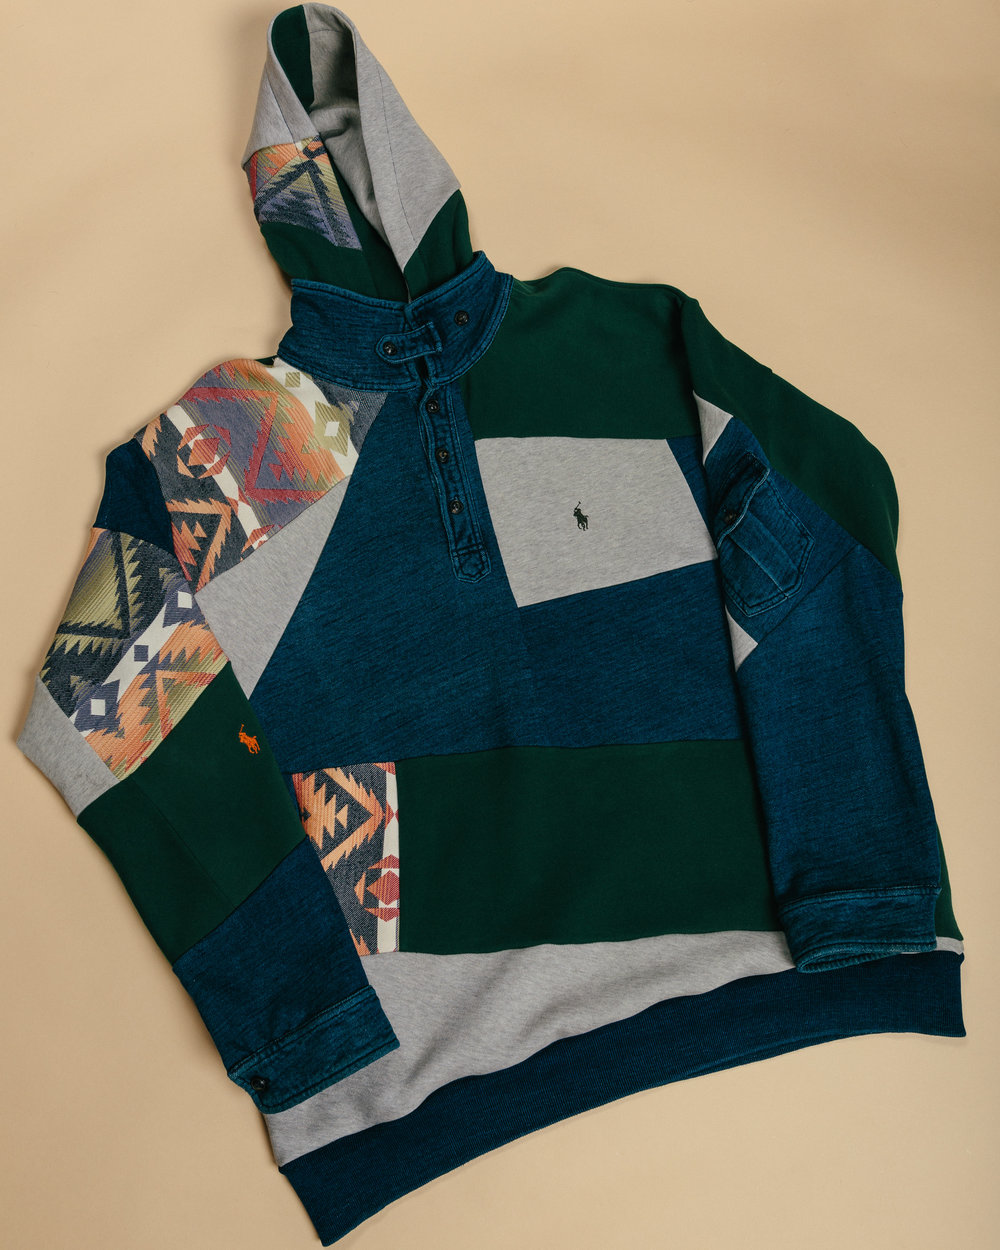 Ralph Lauren Sweater-Hoodie - Made from 3 ralph pieces with a fully button down neck along with side pocket on the left arm and side pockets.